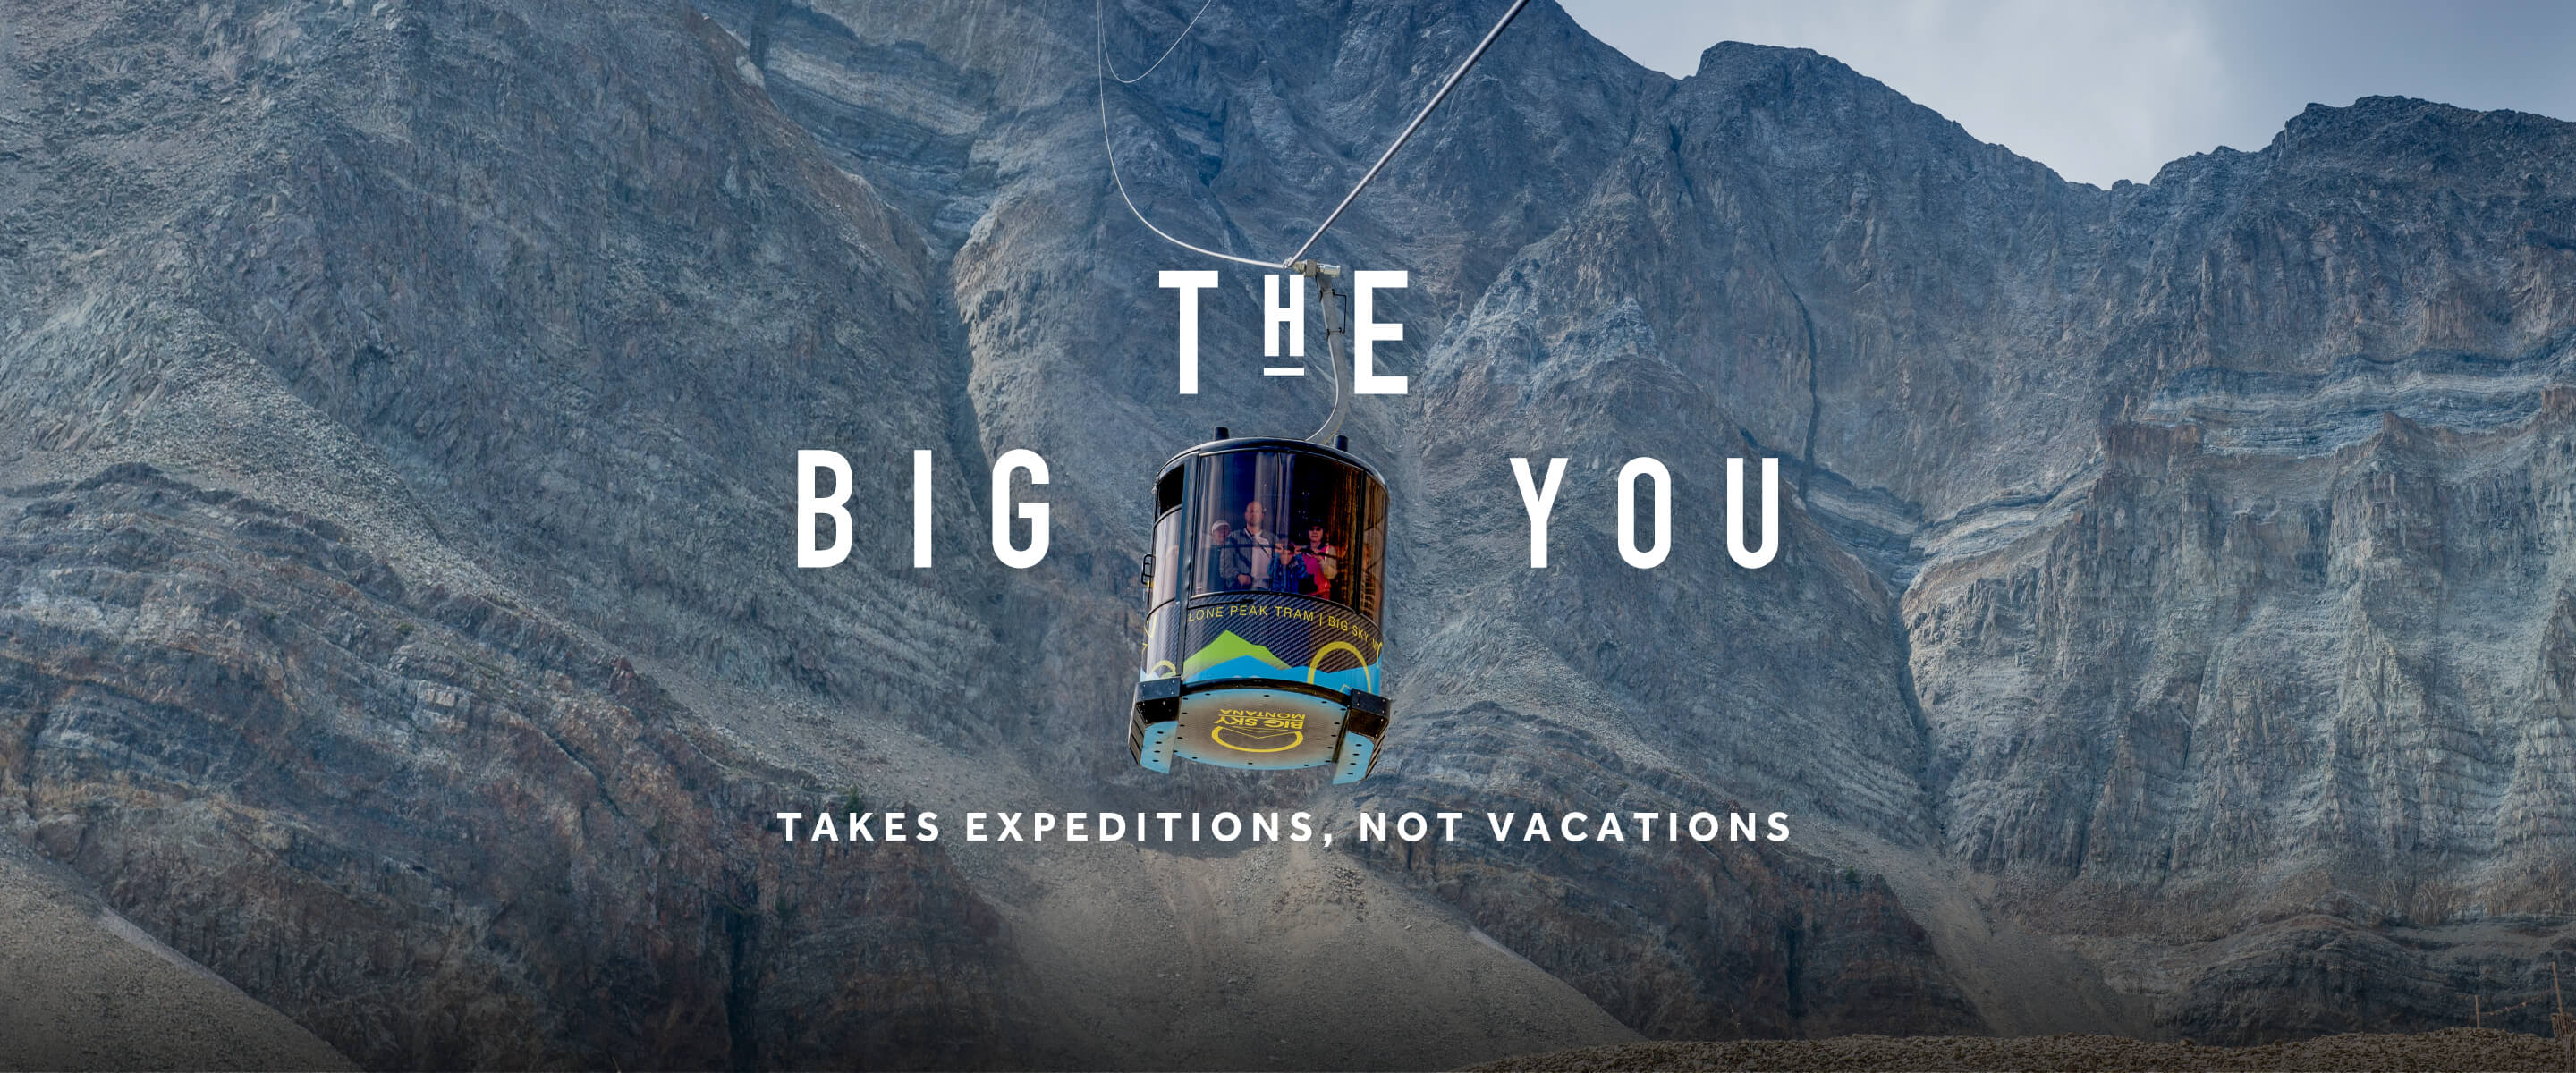 "Photo of the Lone Peak Tram with text overlay ""The Big You takes expeditions, not vacations"""